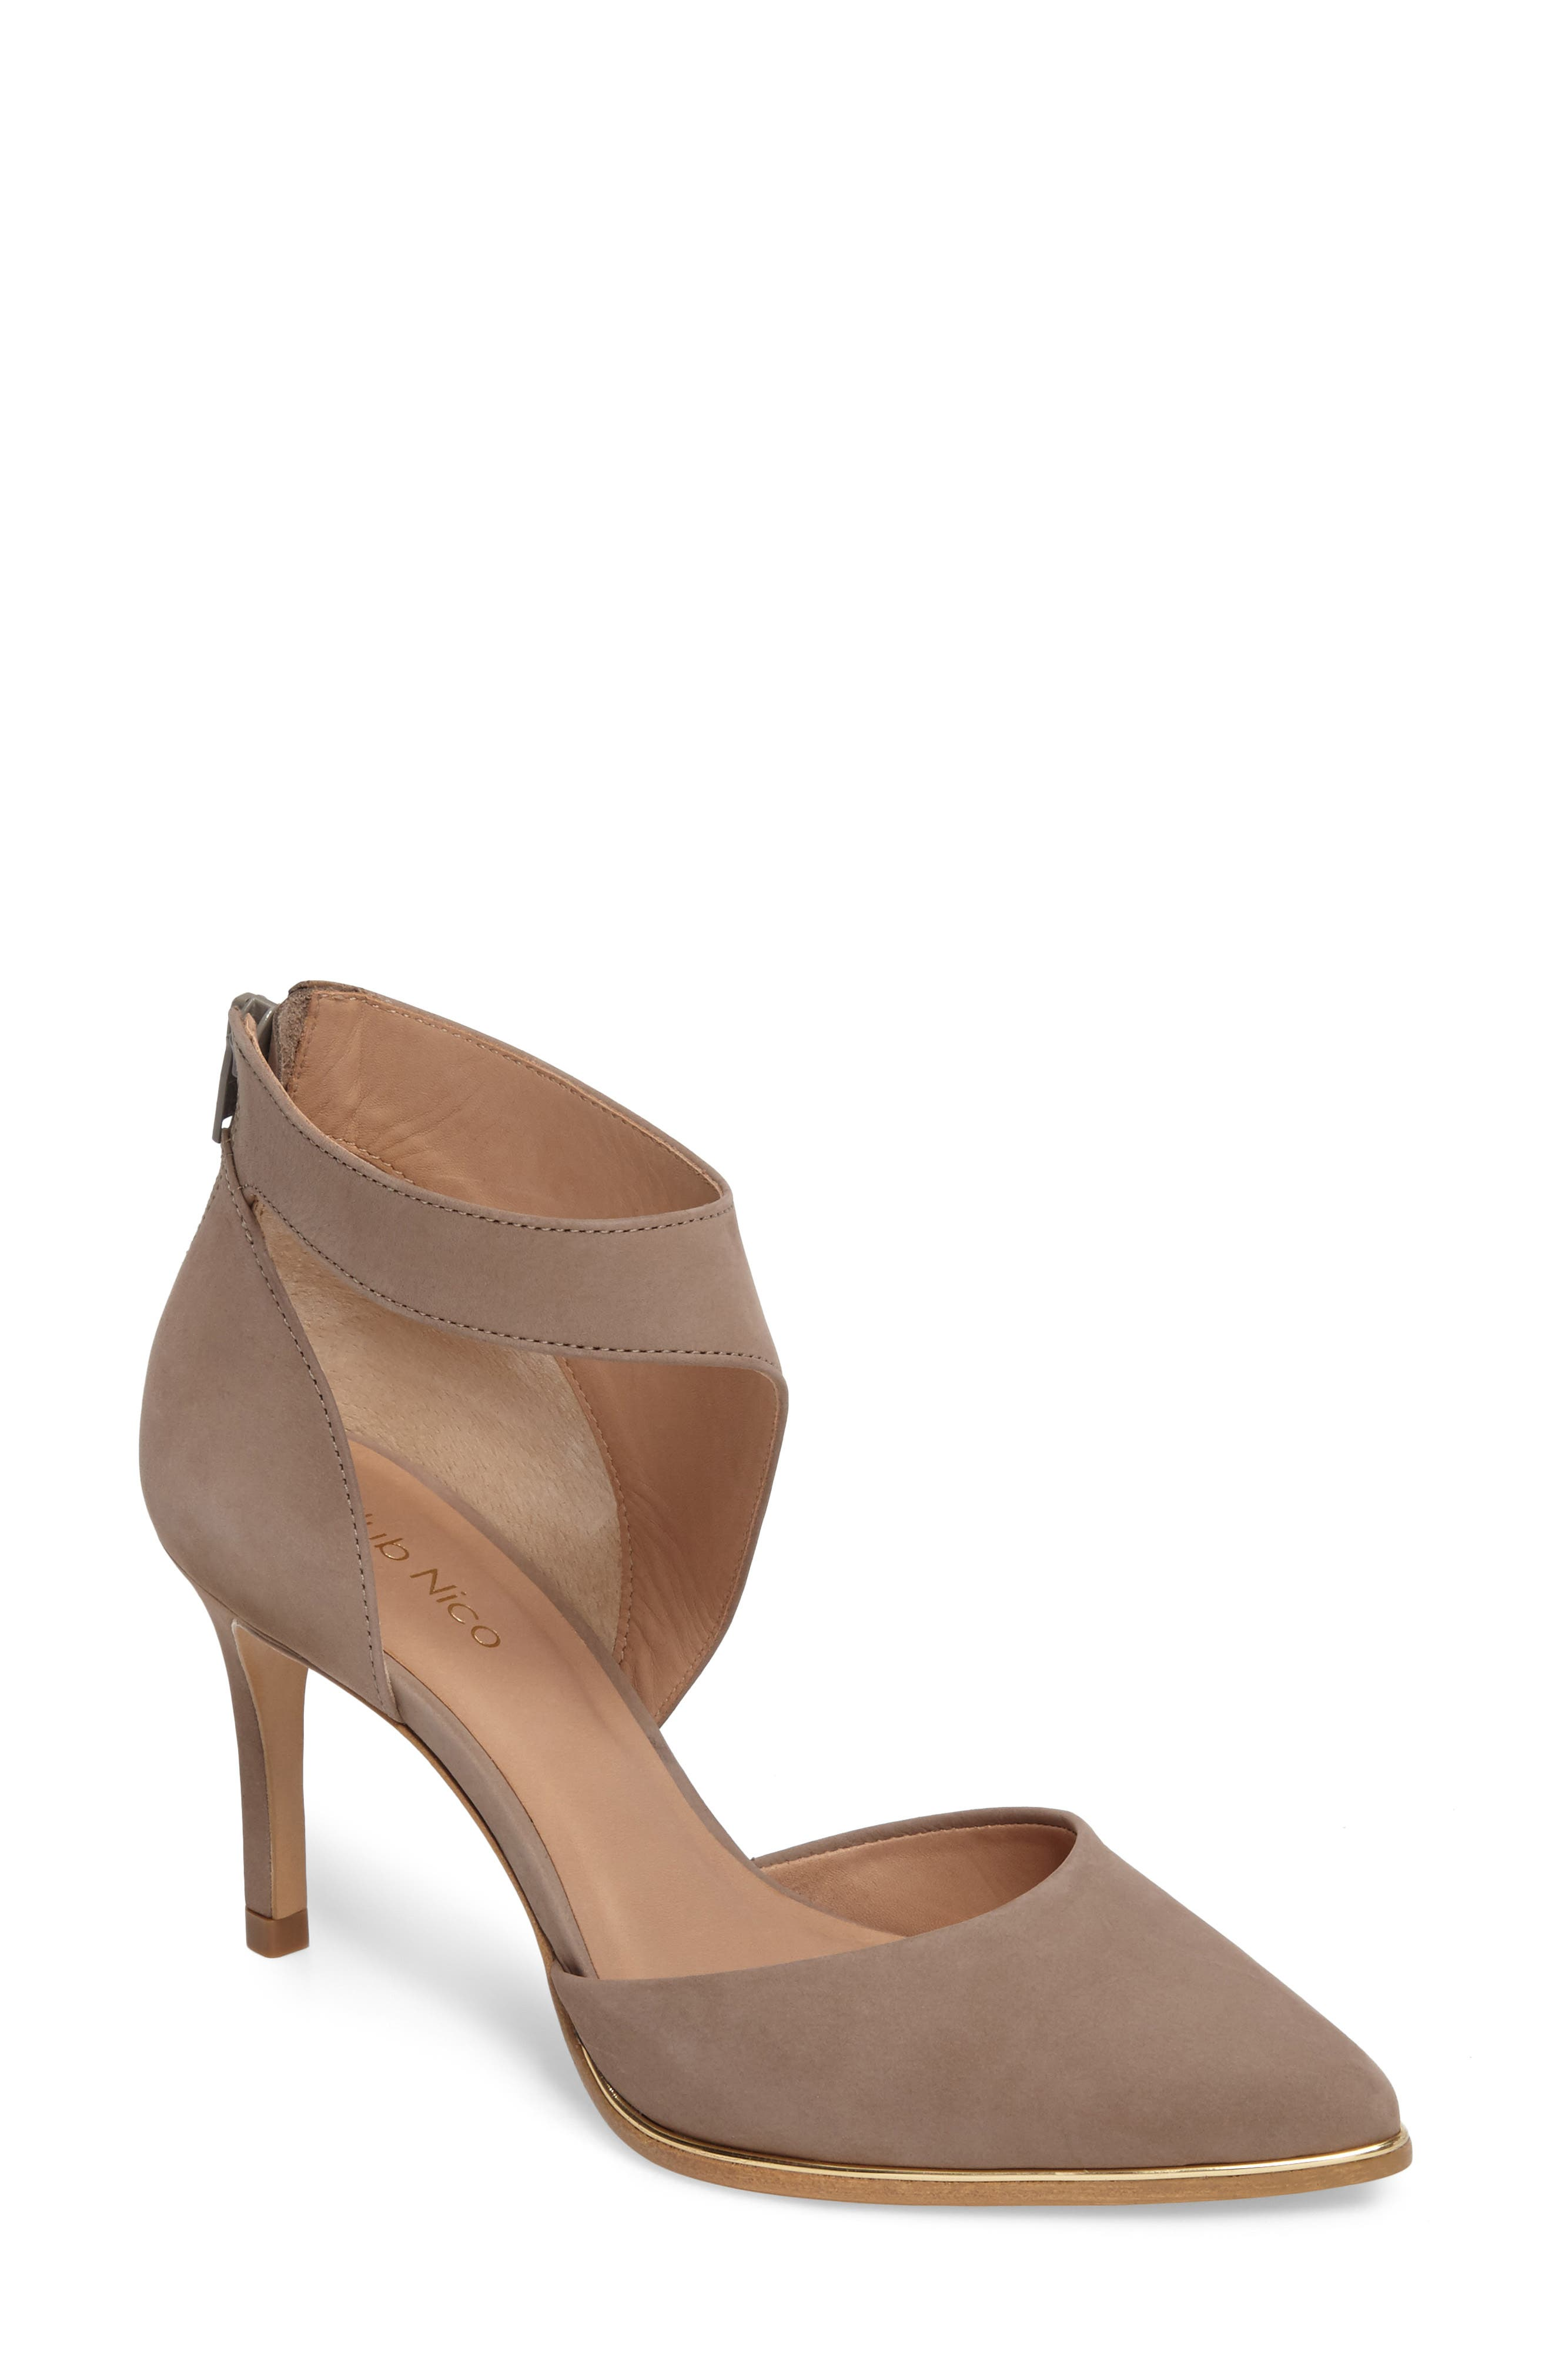 Alternate Image 1 Selected - Klub Nico Rimona Pump (Women)